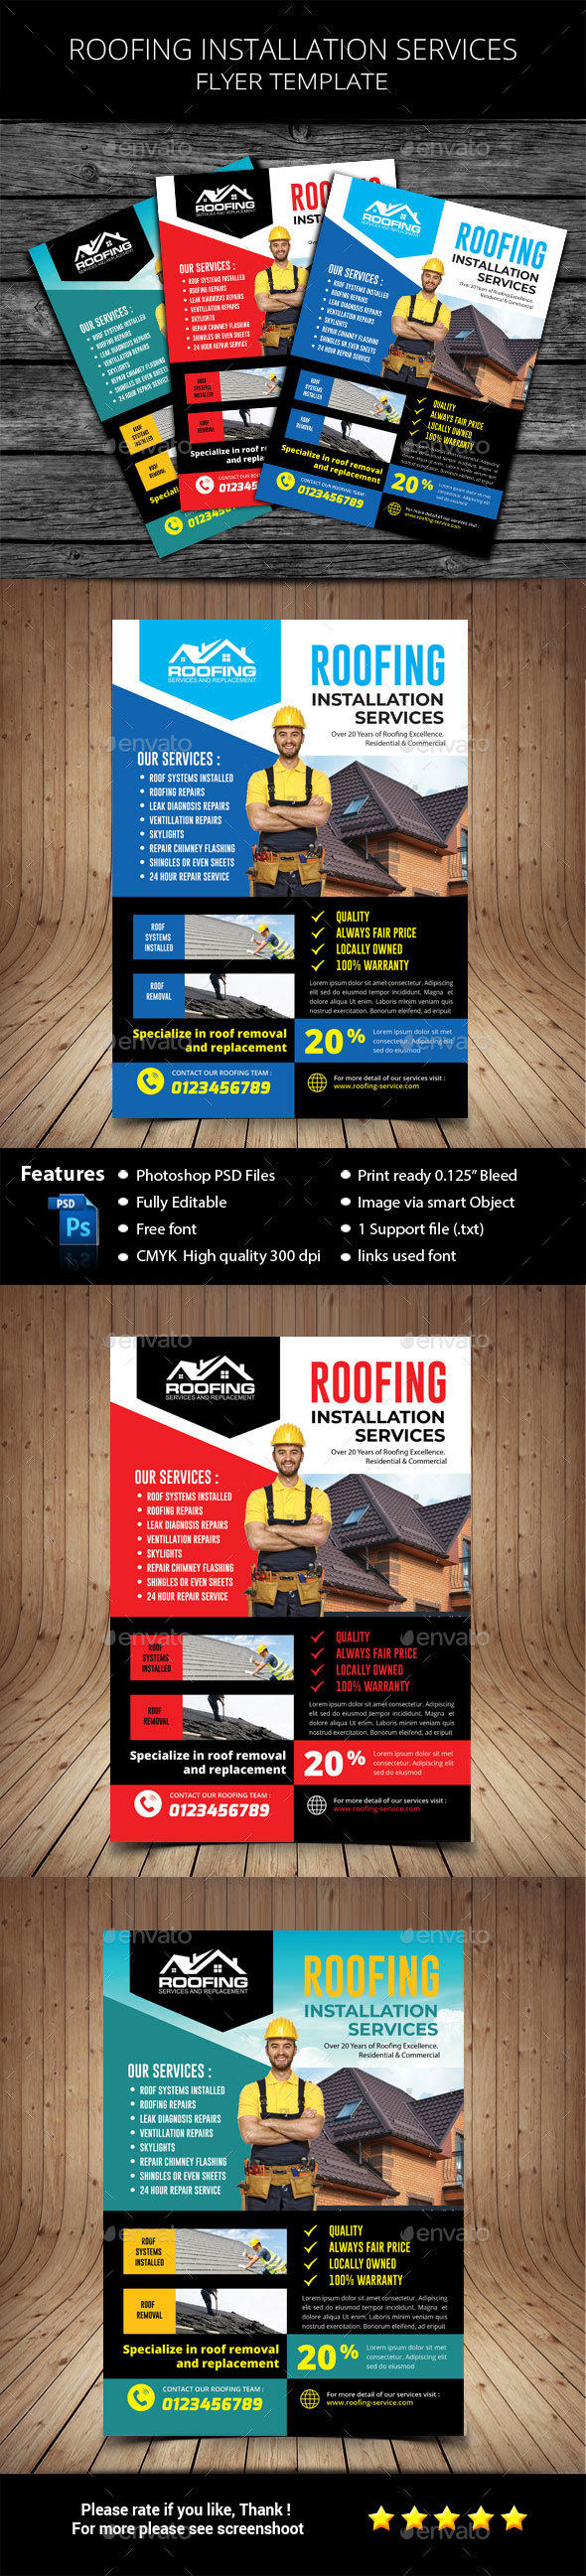 Roofing Service Flyer - Corporate Business Cards